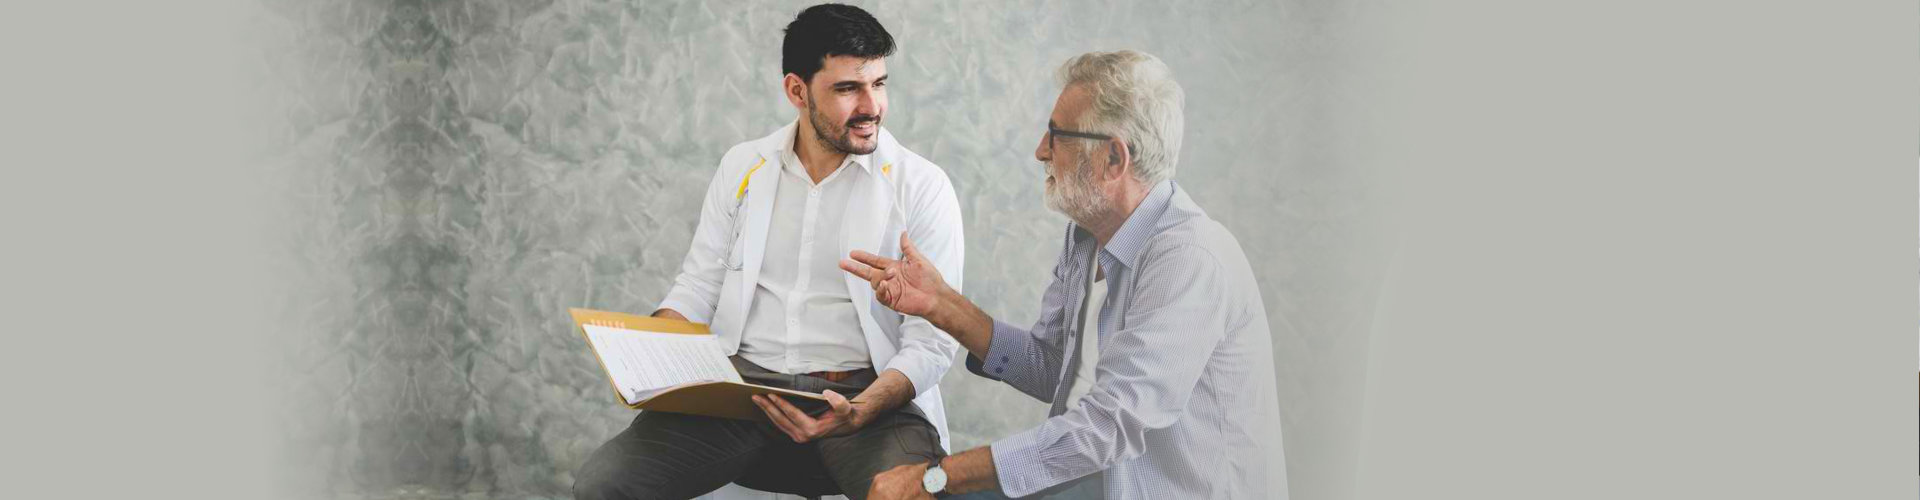 senior man talking to his doctor